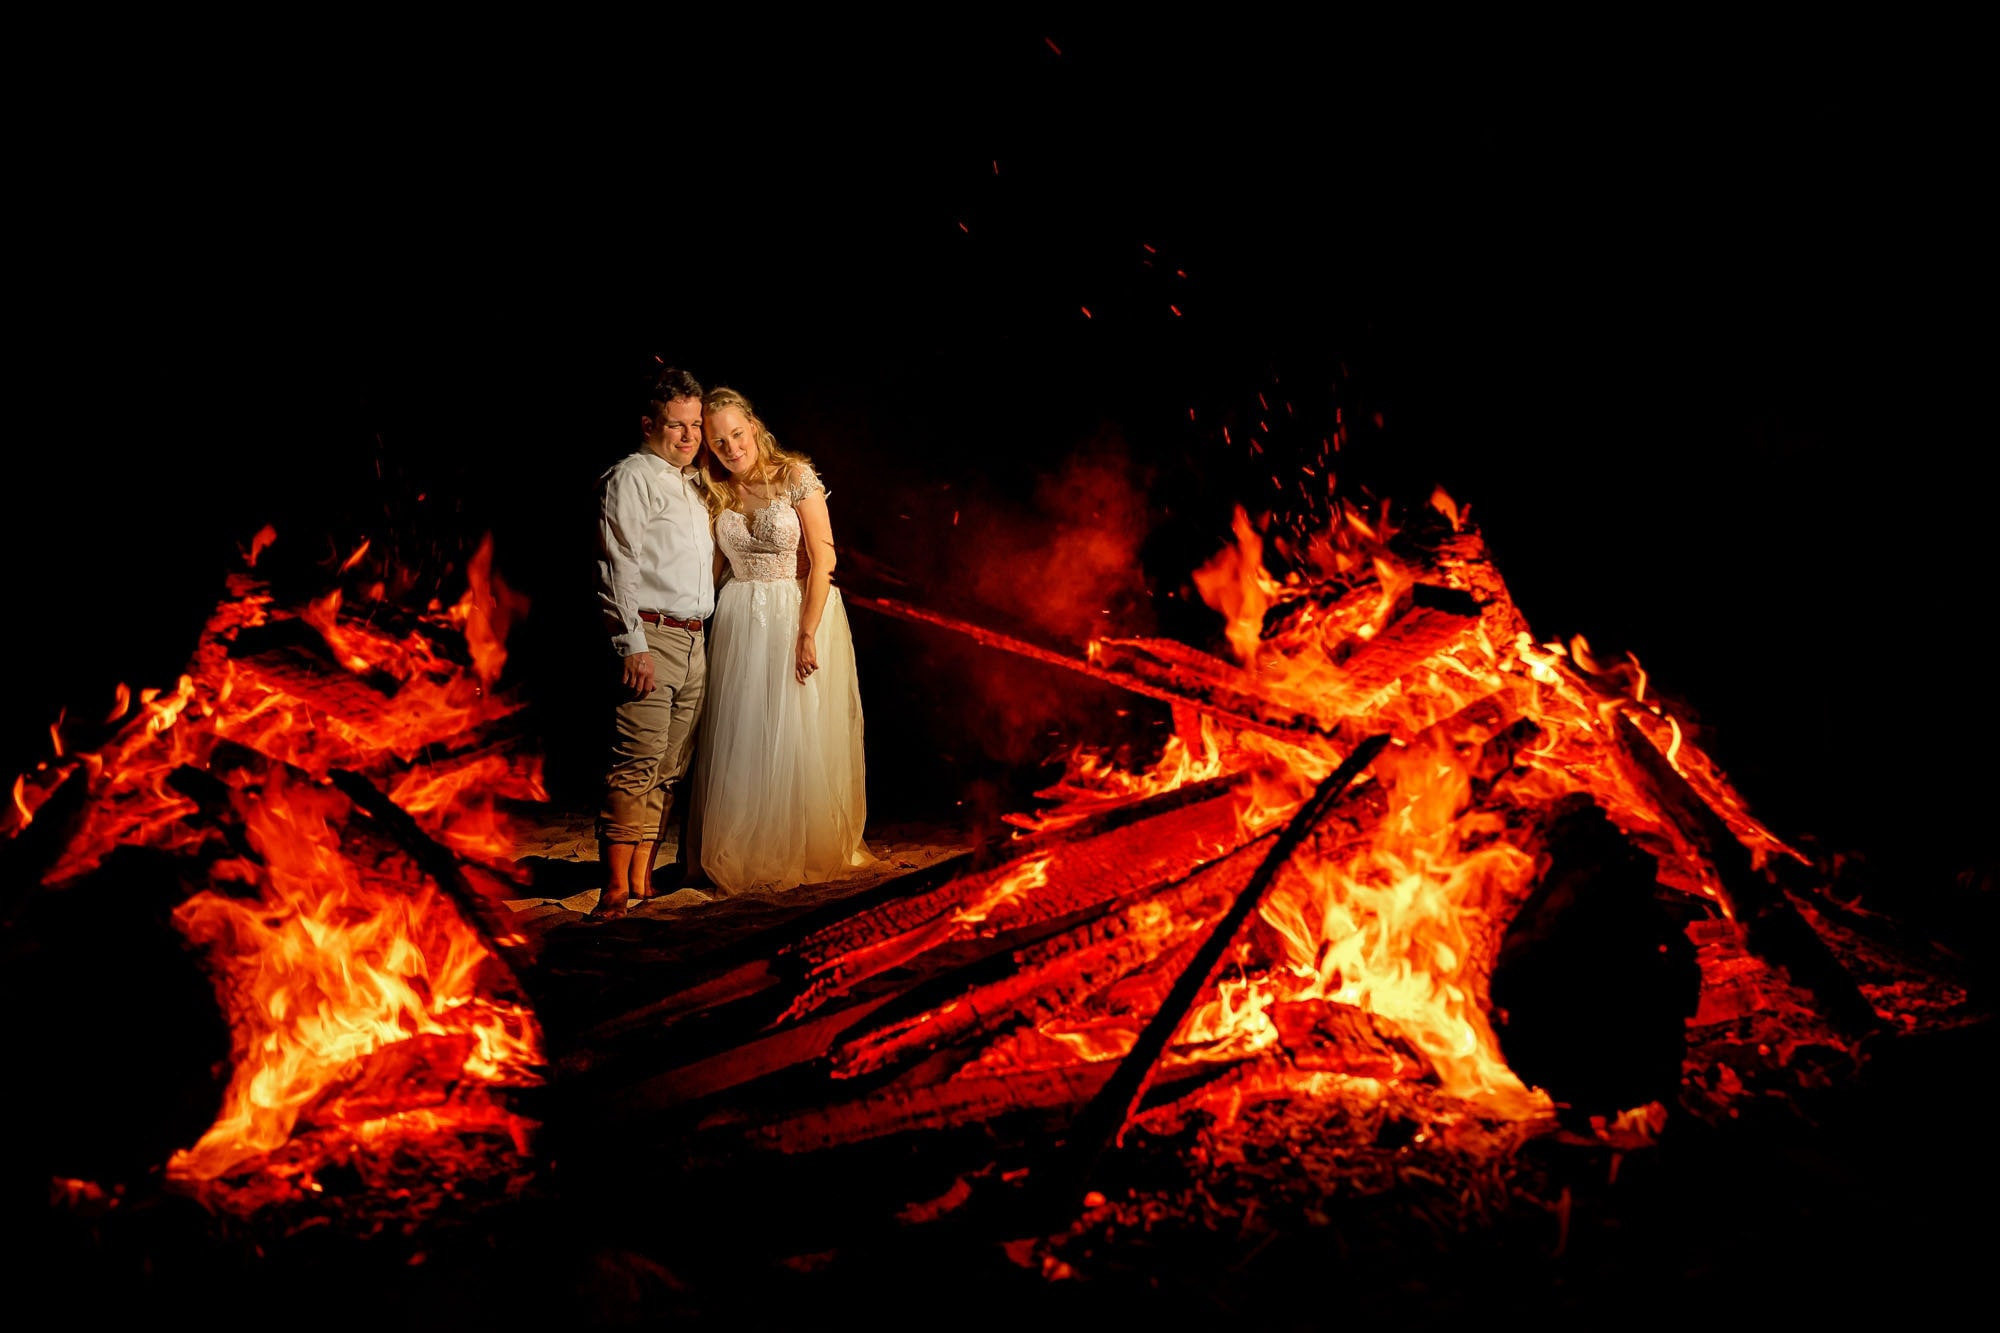 Creative wedding photography: shooting through the bonfire